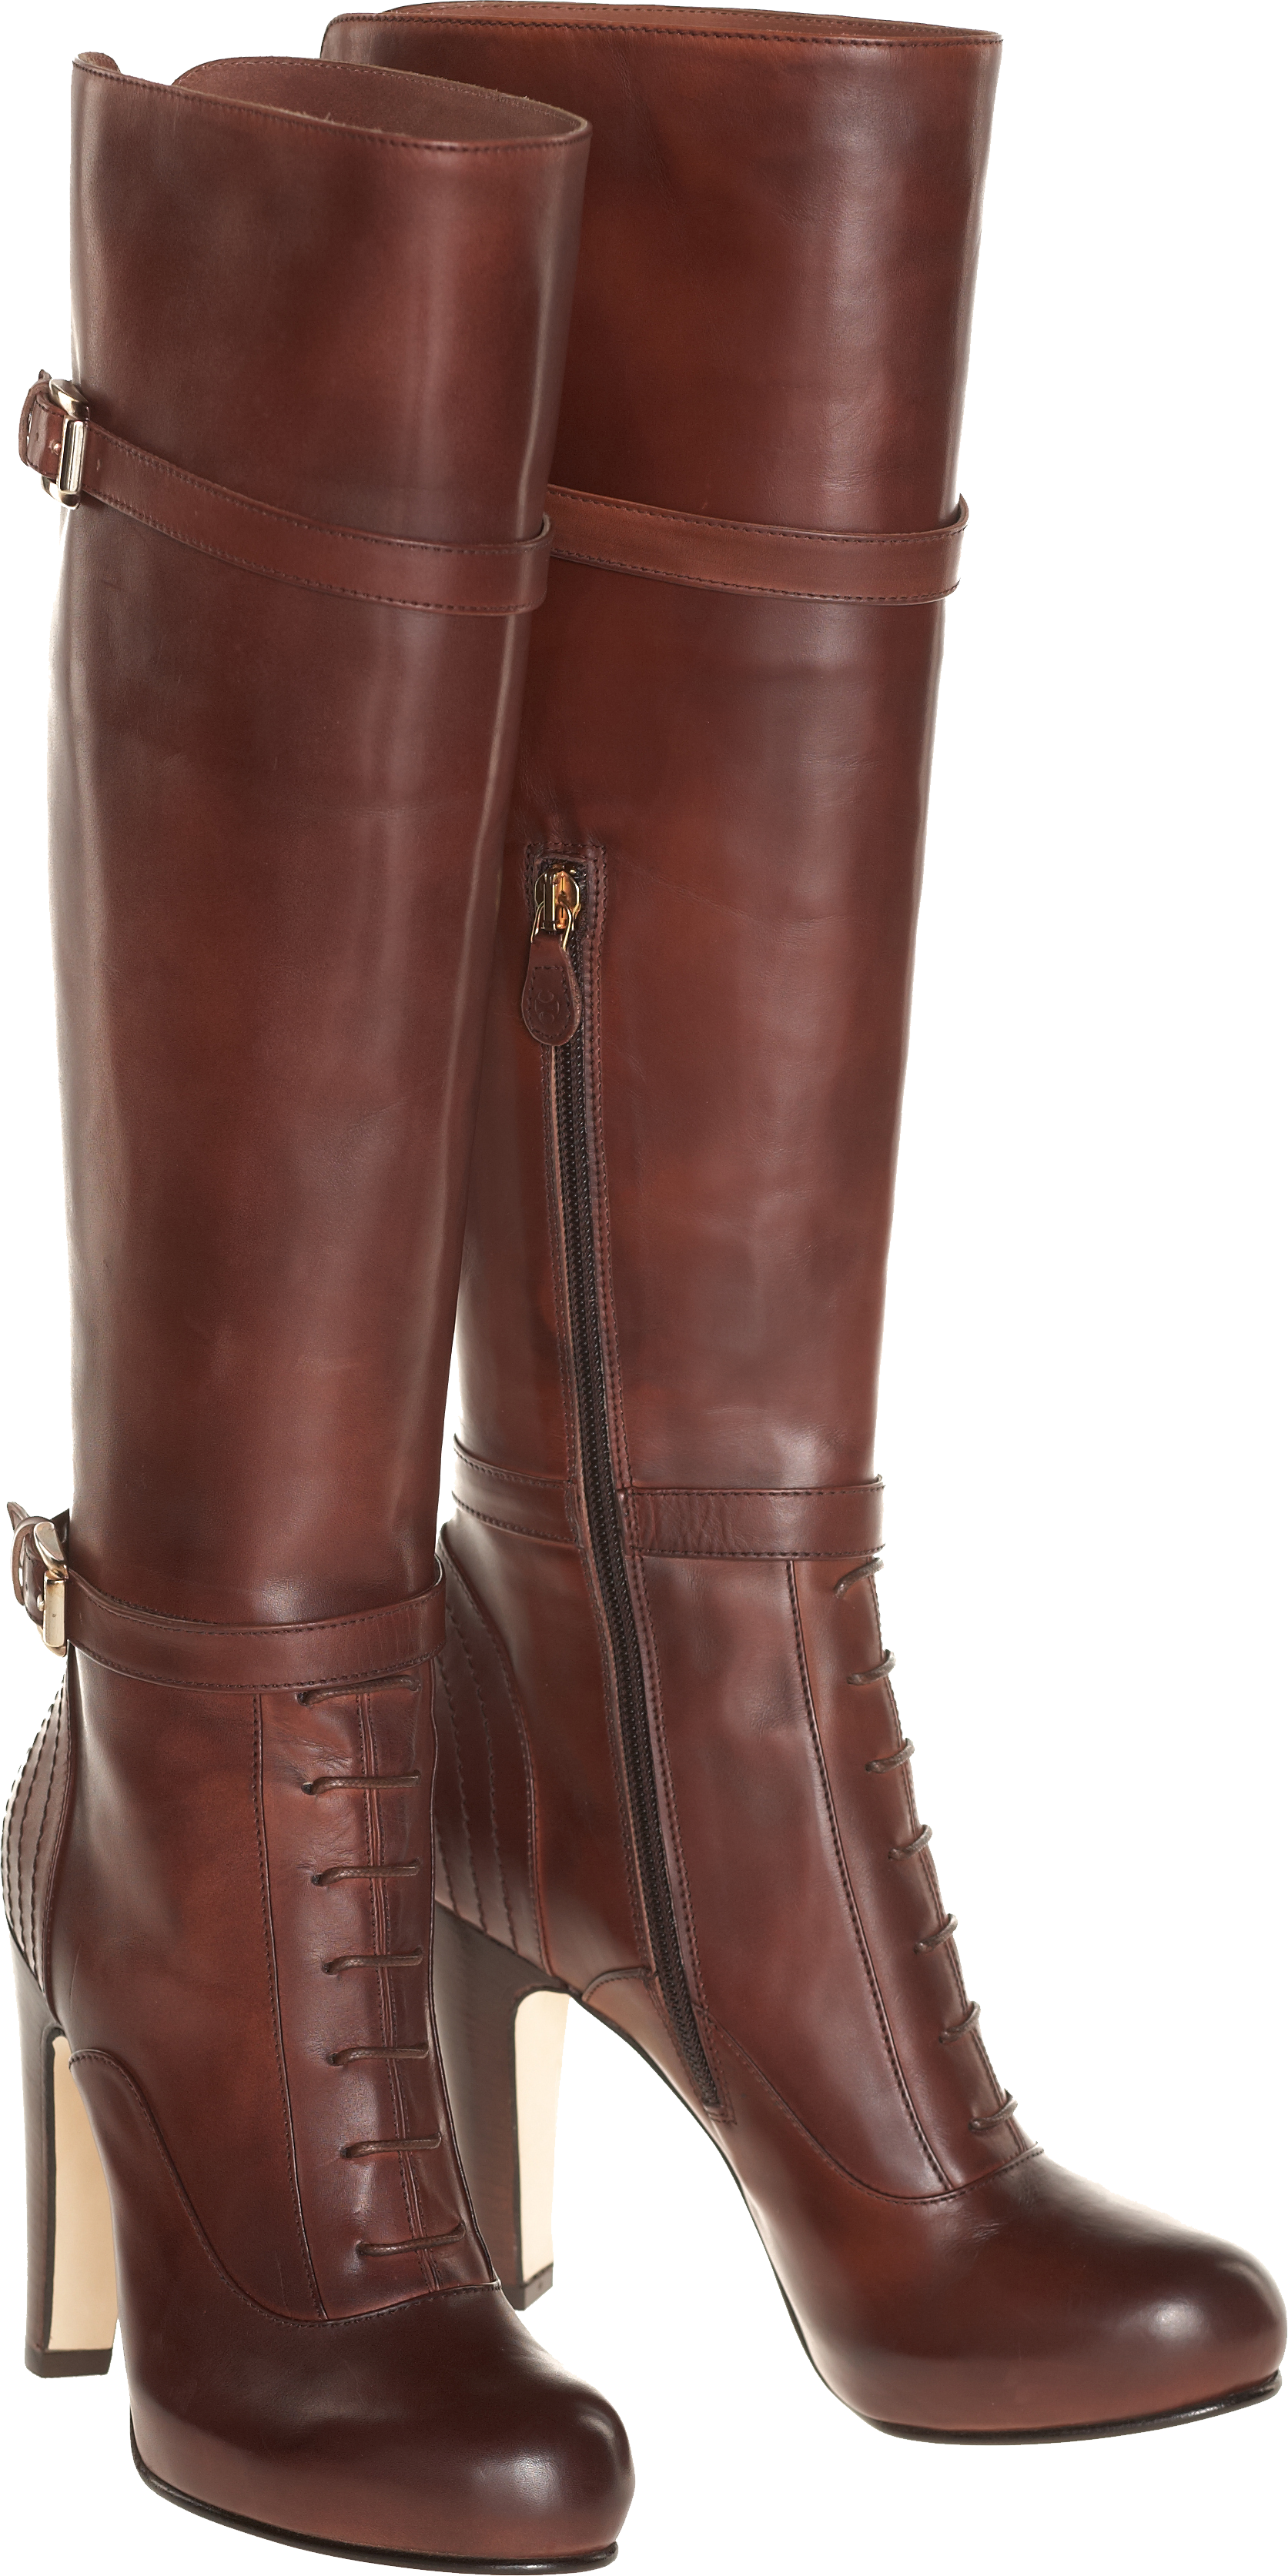 Women S Boot Made Of Genuine Chocolate Leather Png Image Boots Bootie Boots Shoes